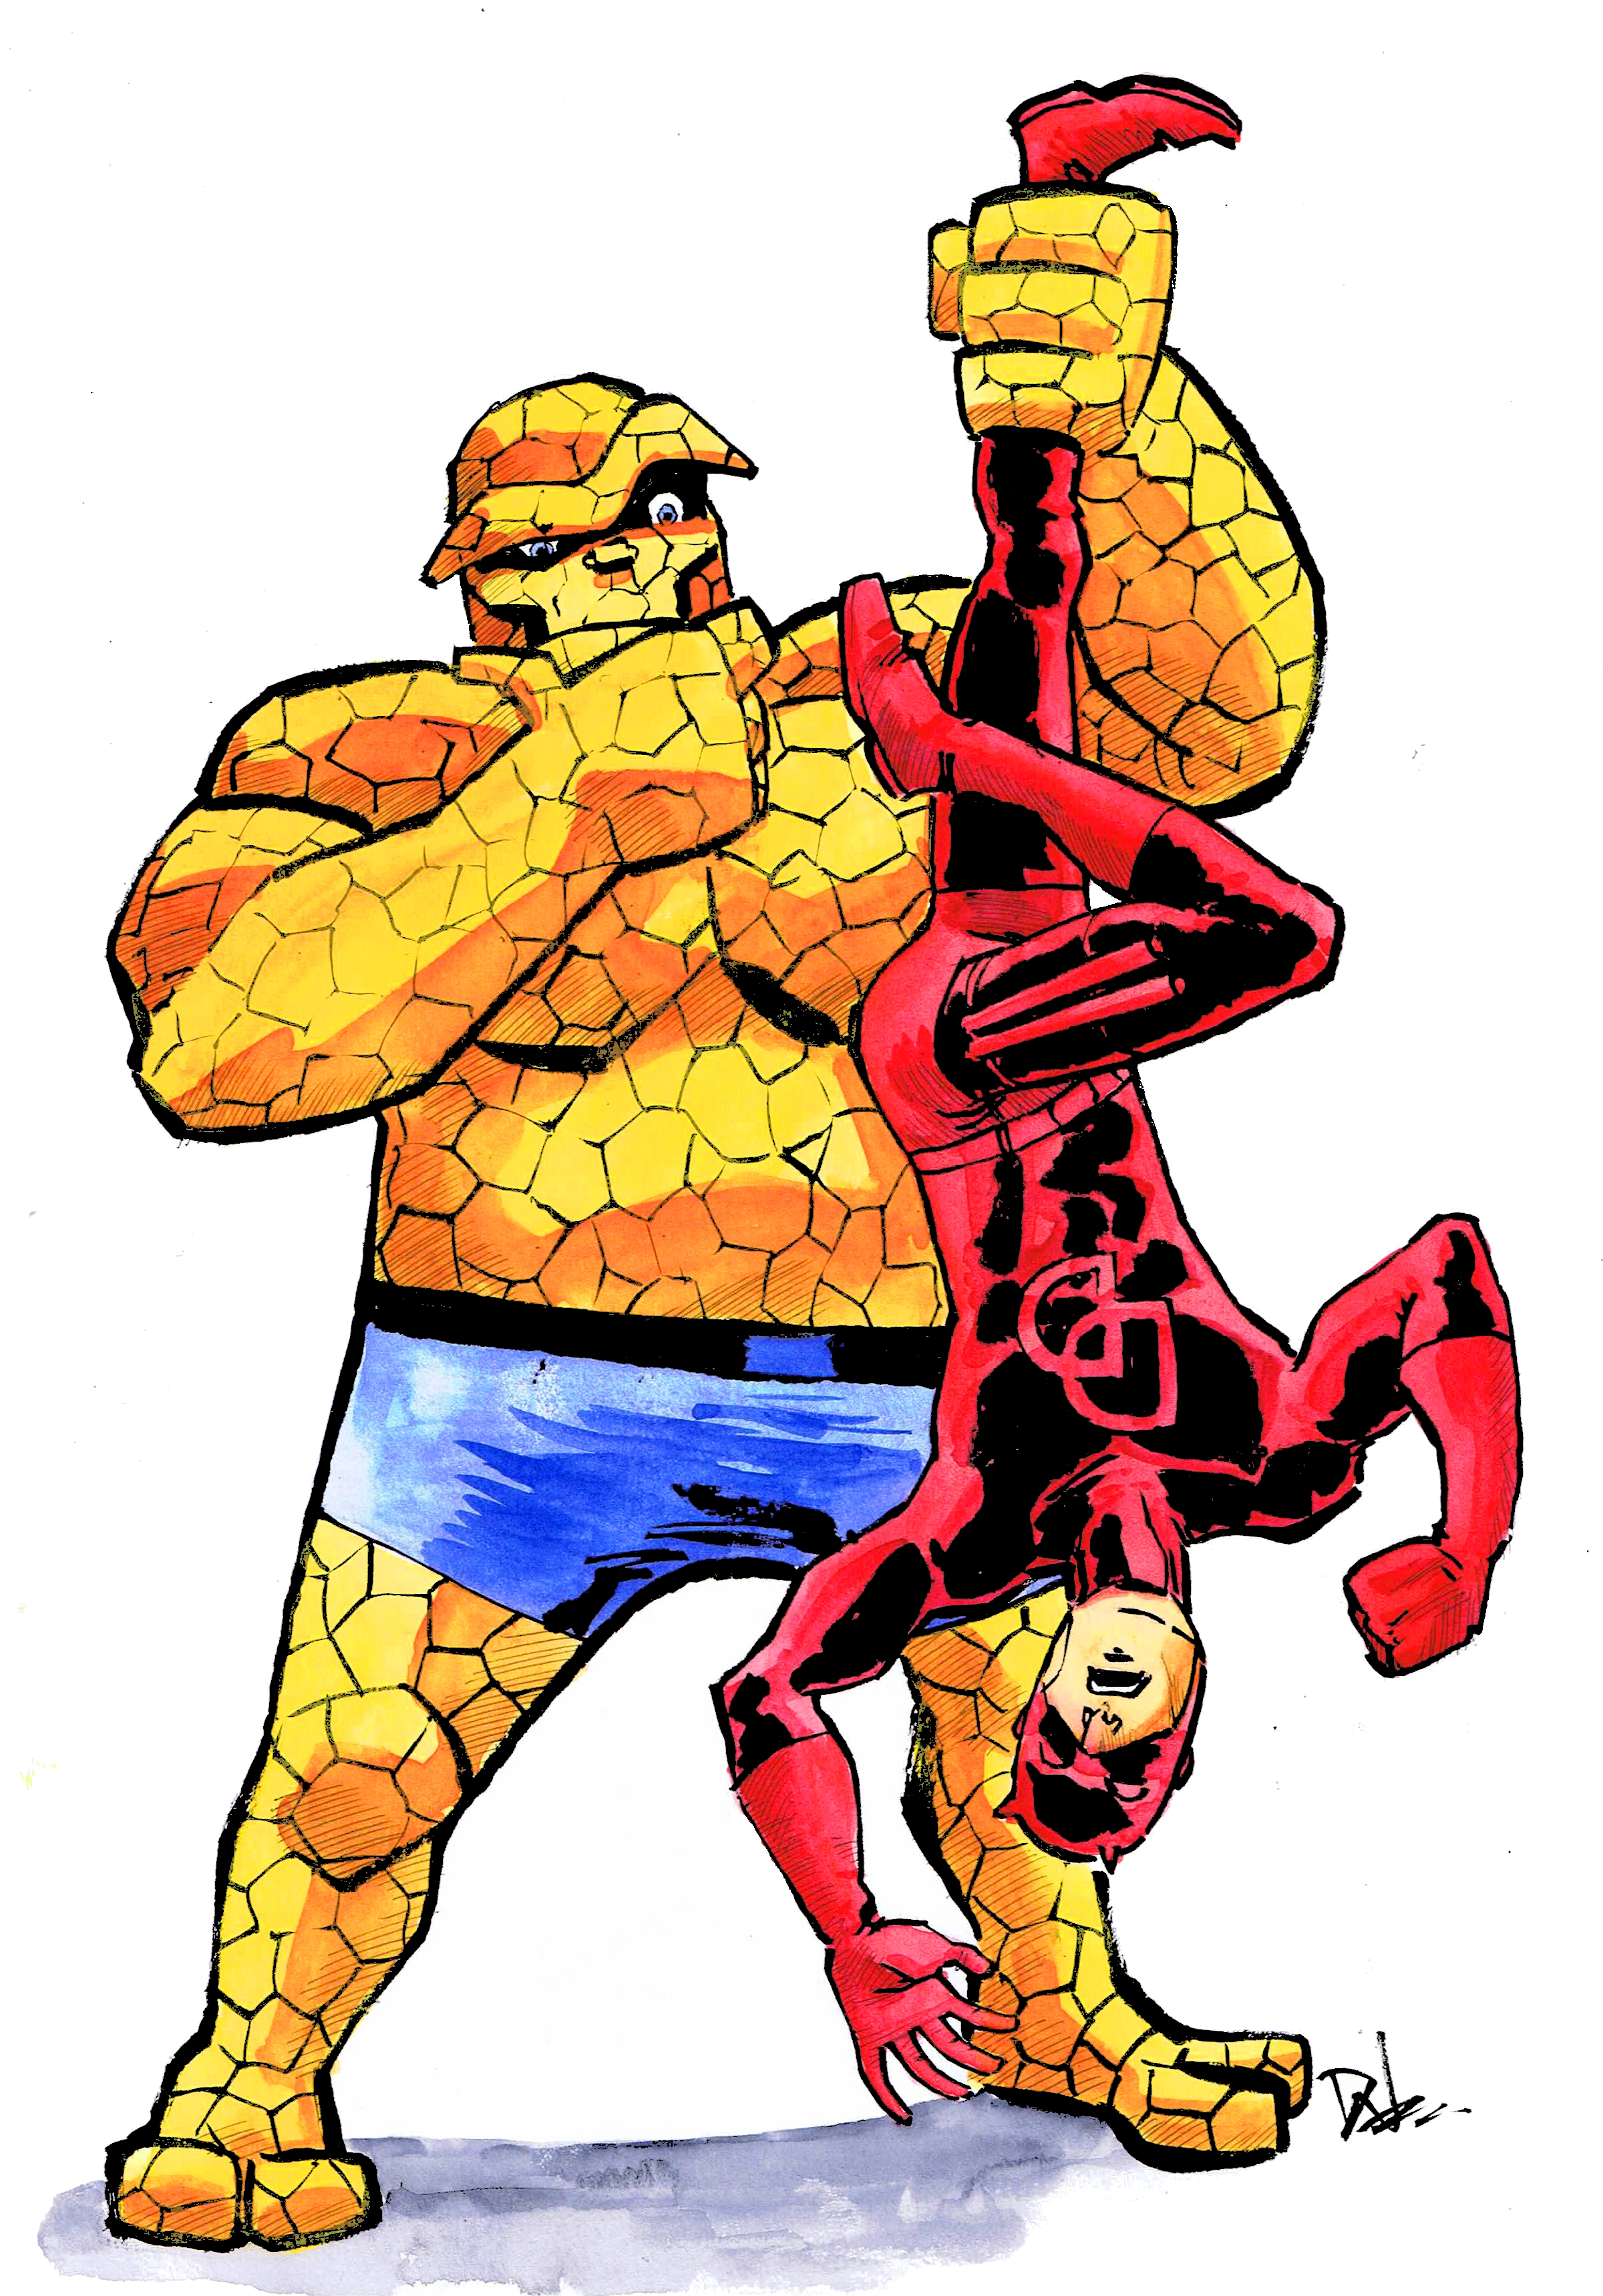 Daredevil and The Thing, art by David Wynne